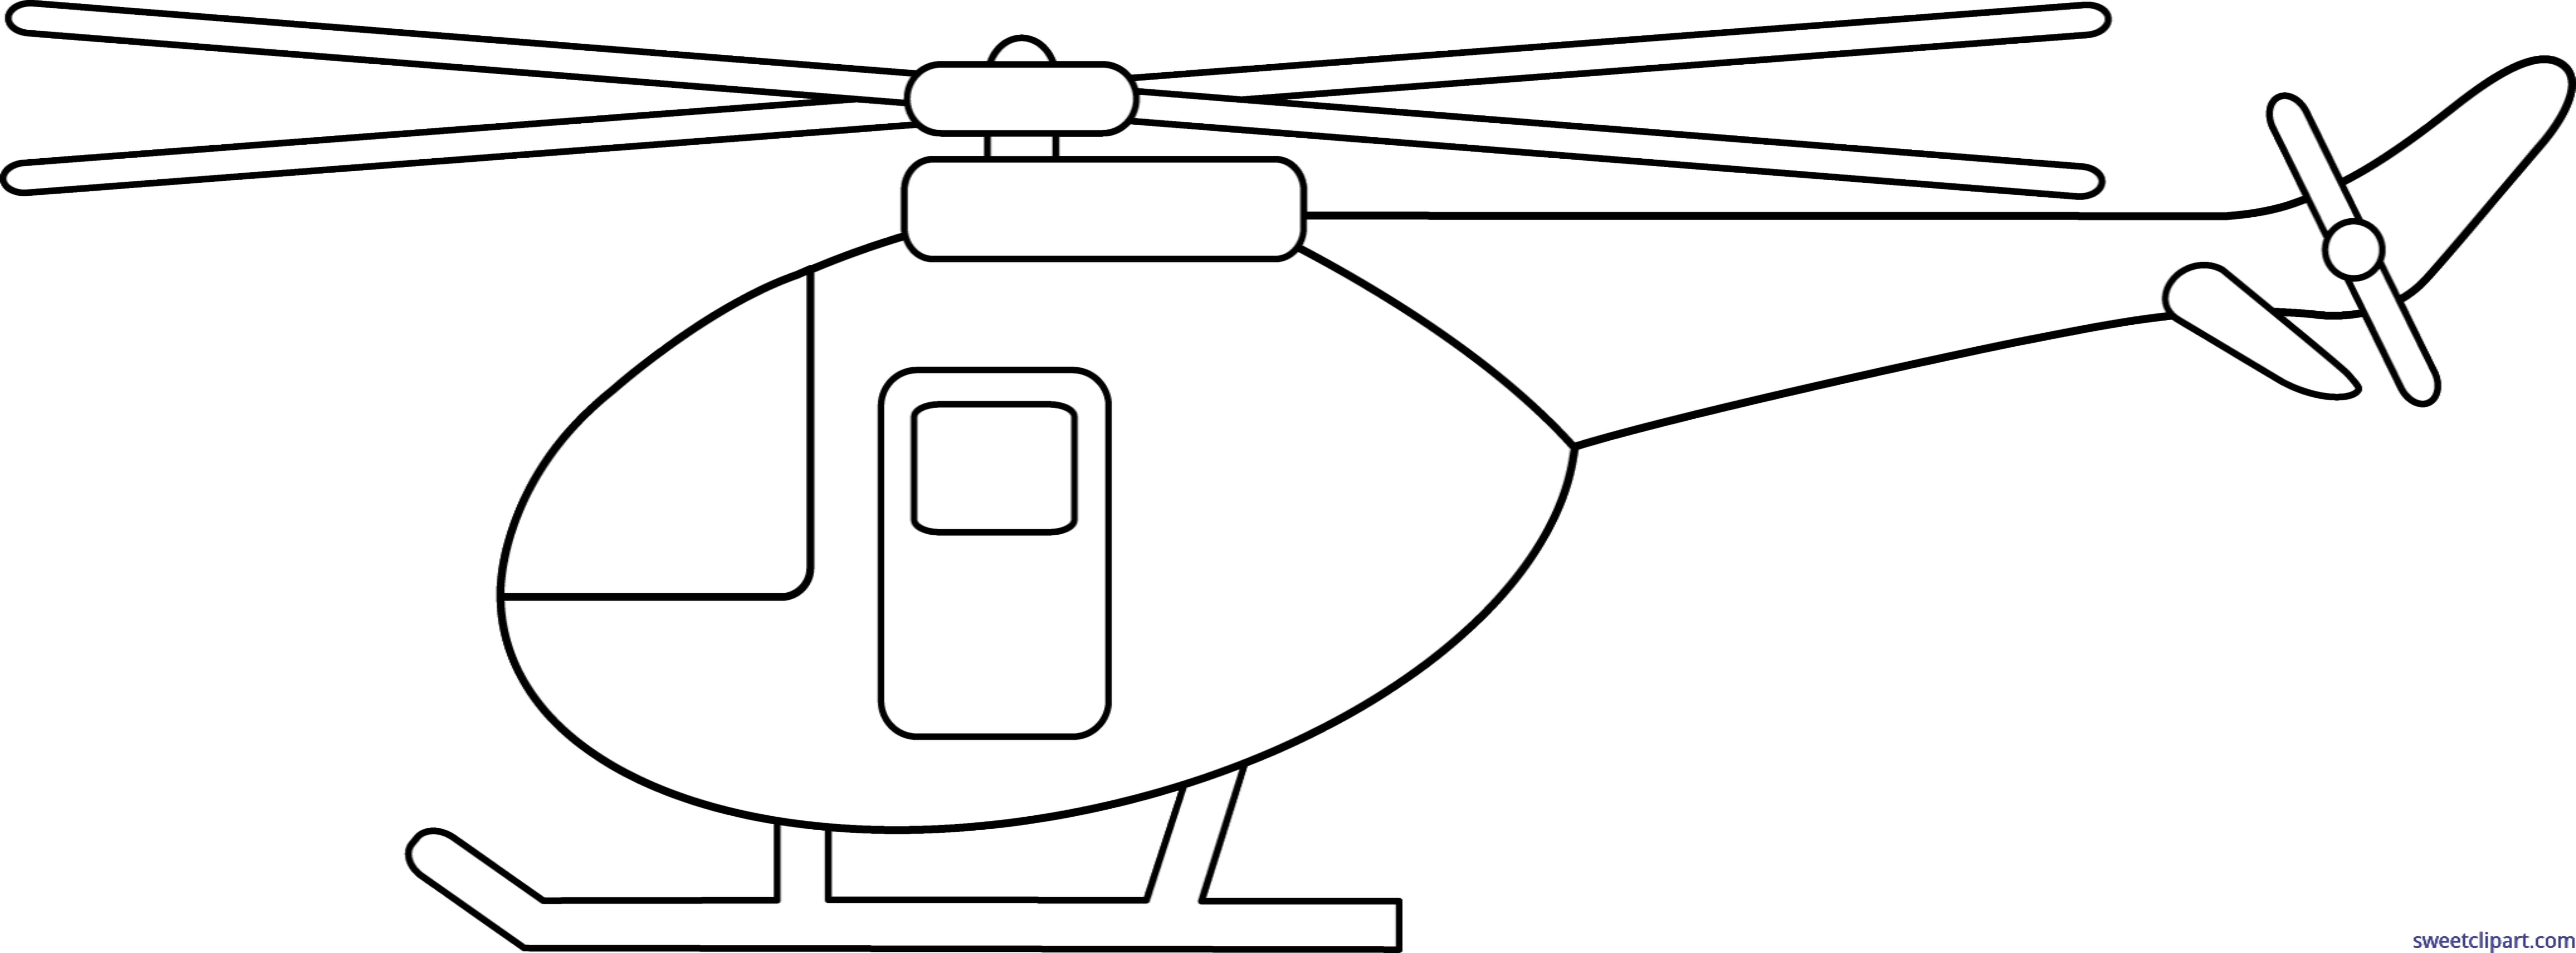 Helicopter clipart military parachute. Sweet clip art page